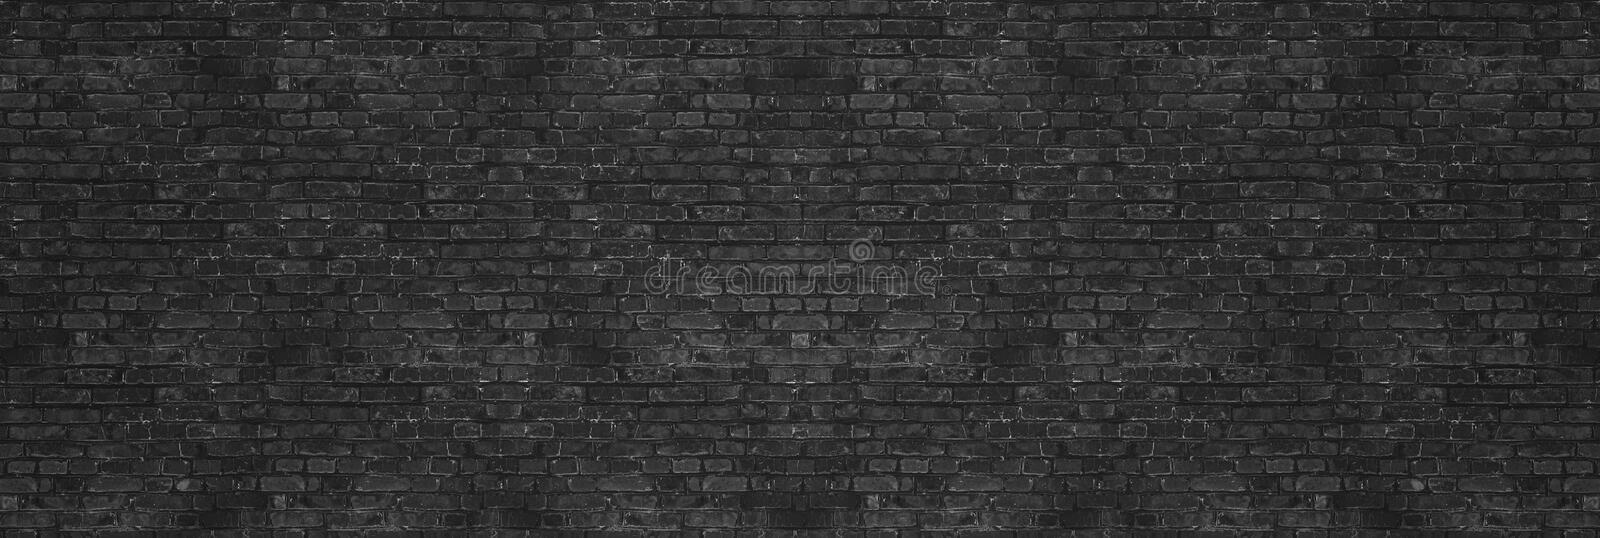 Vintage Black wash brick wall texture for design. Panoramic background for your text or image. royalty free stock photos